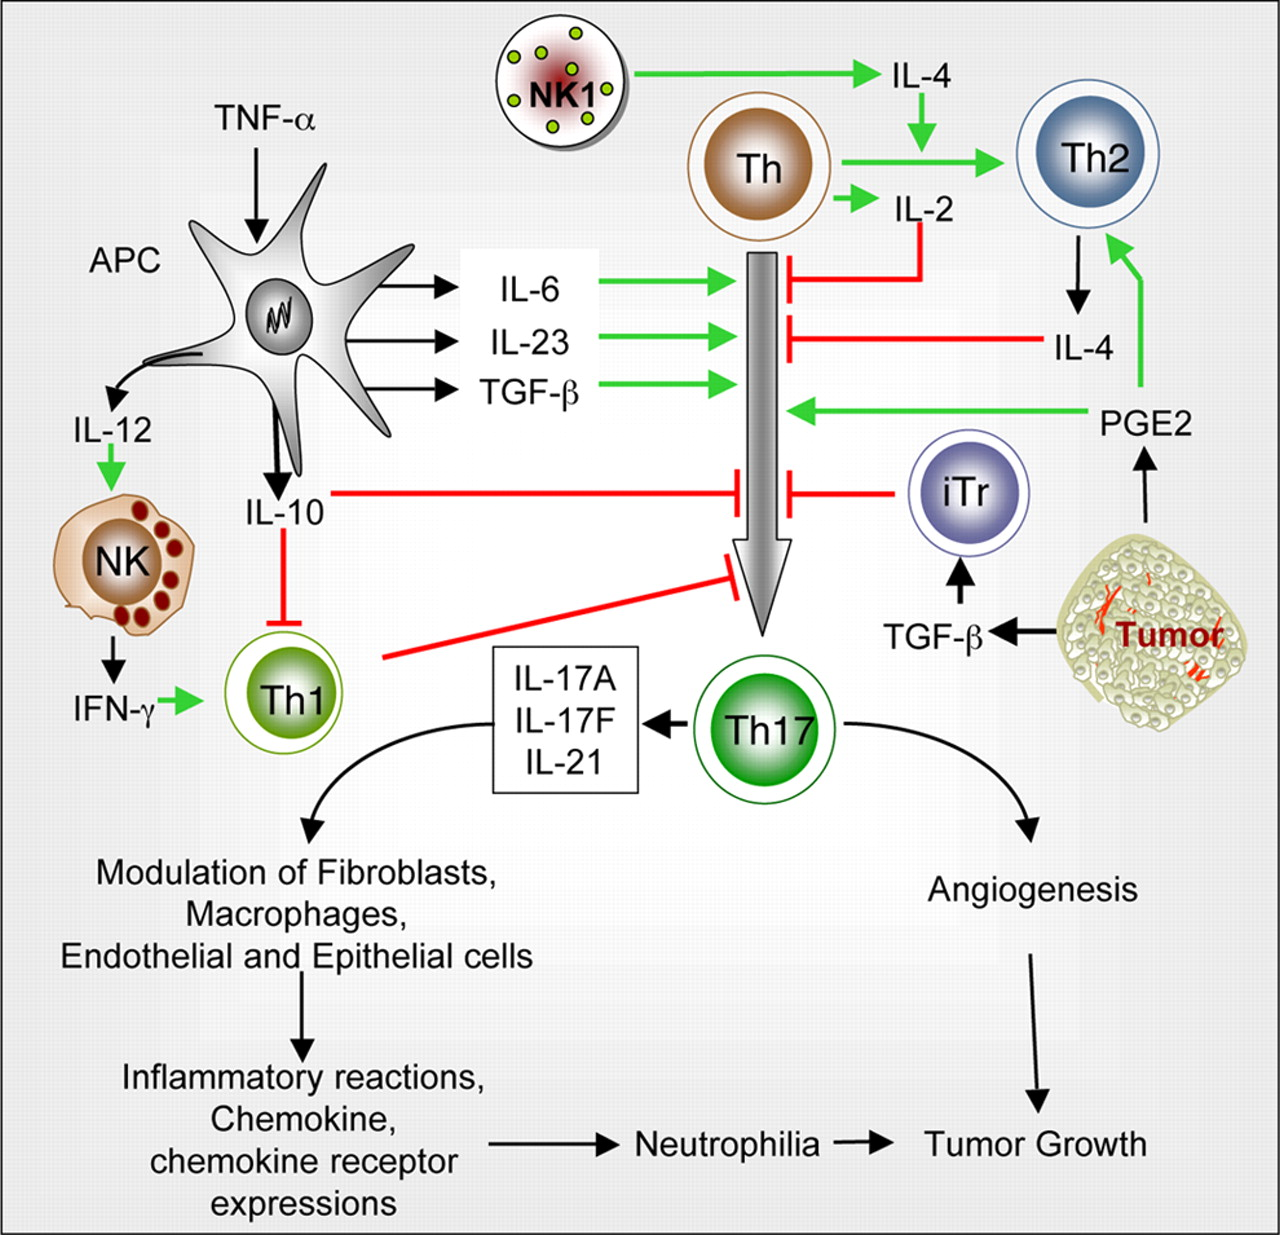 18 1 Architecture Of The Immune System: Protumor Vs Antitumor Functions Of IL-17